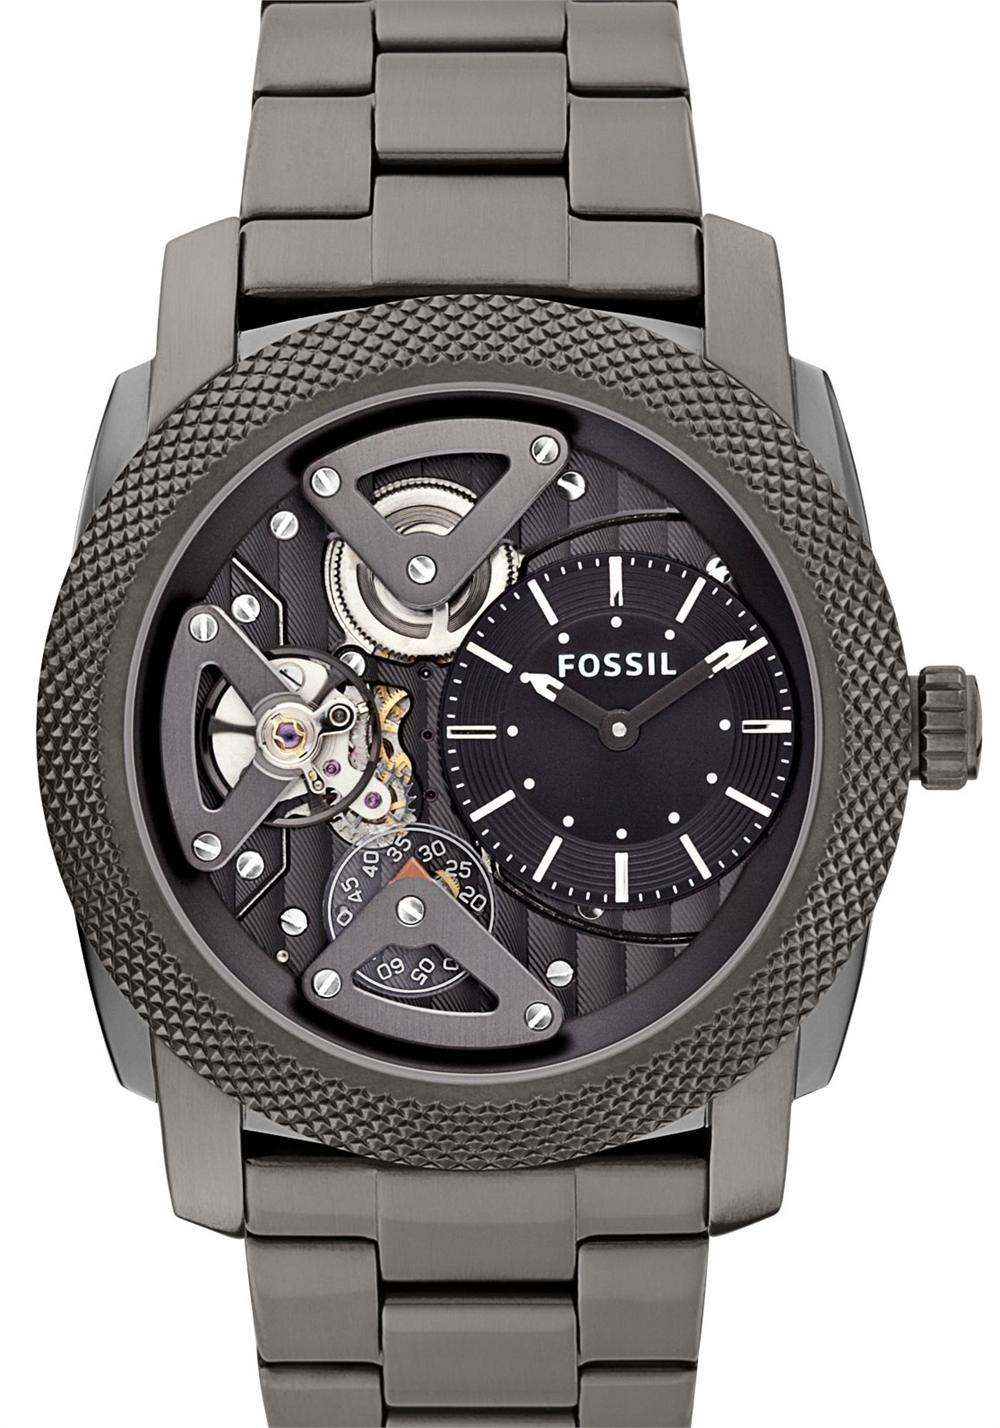 2e5a44ba45a75 Love Fossil... MACHINE TWIST Stainless Steel   Leather - Smoke Our  industrial-